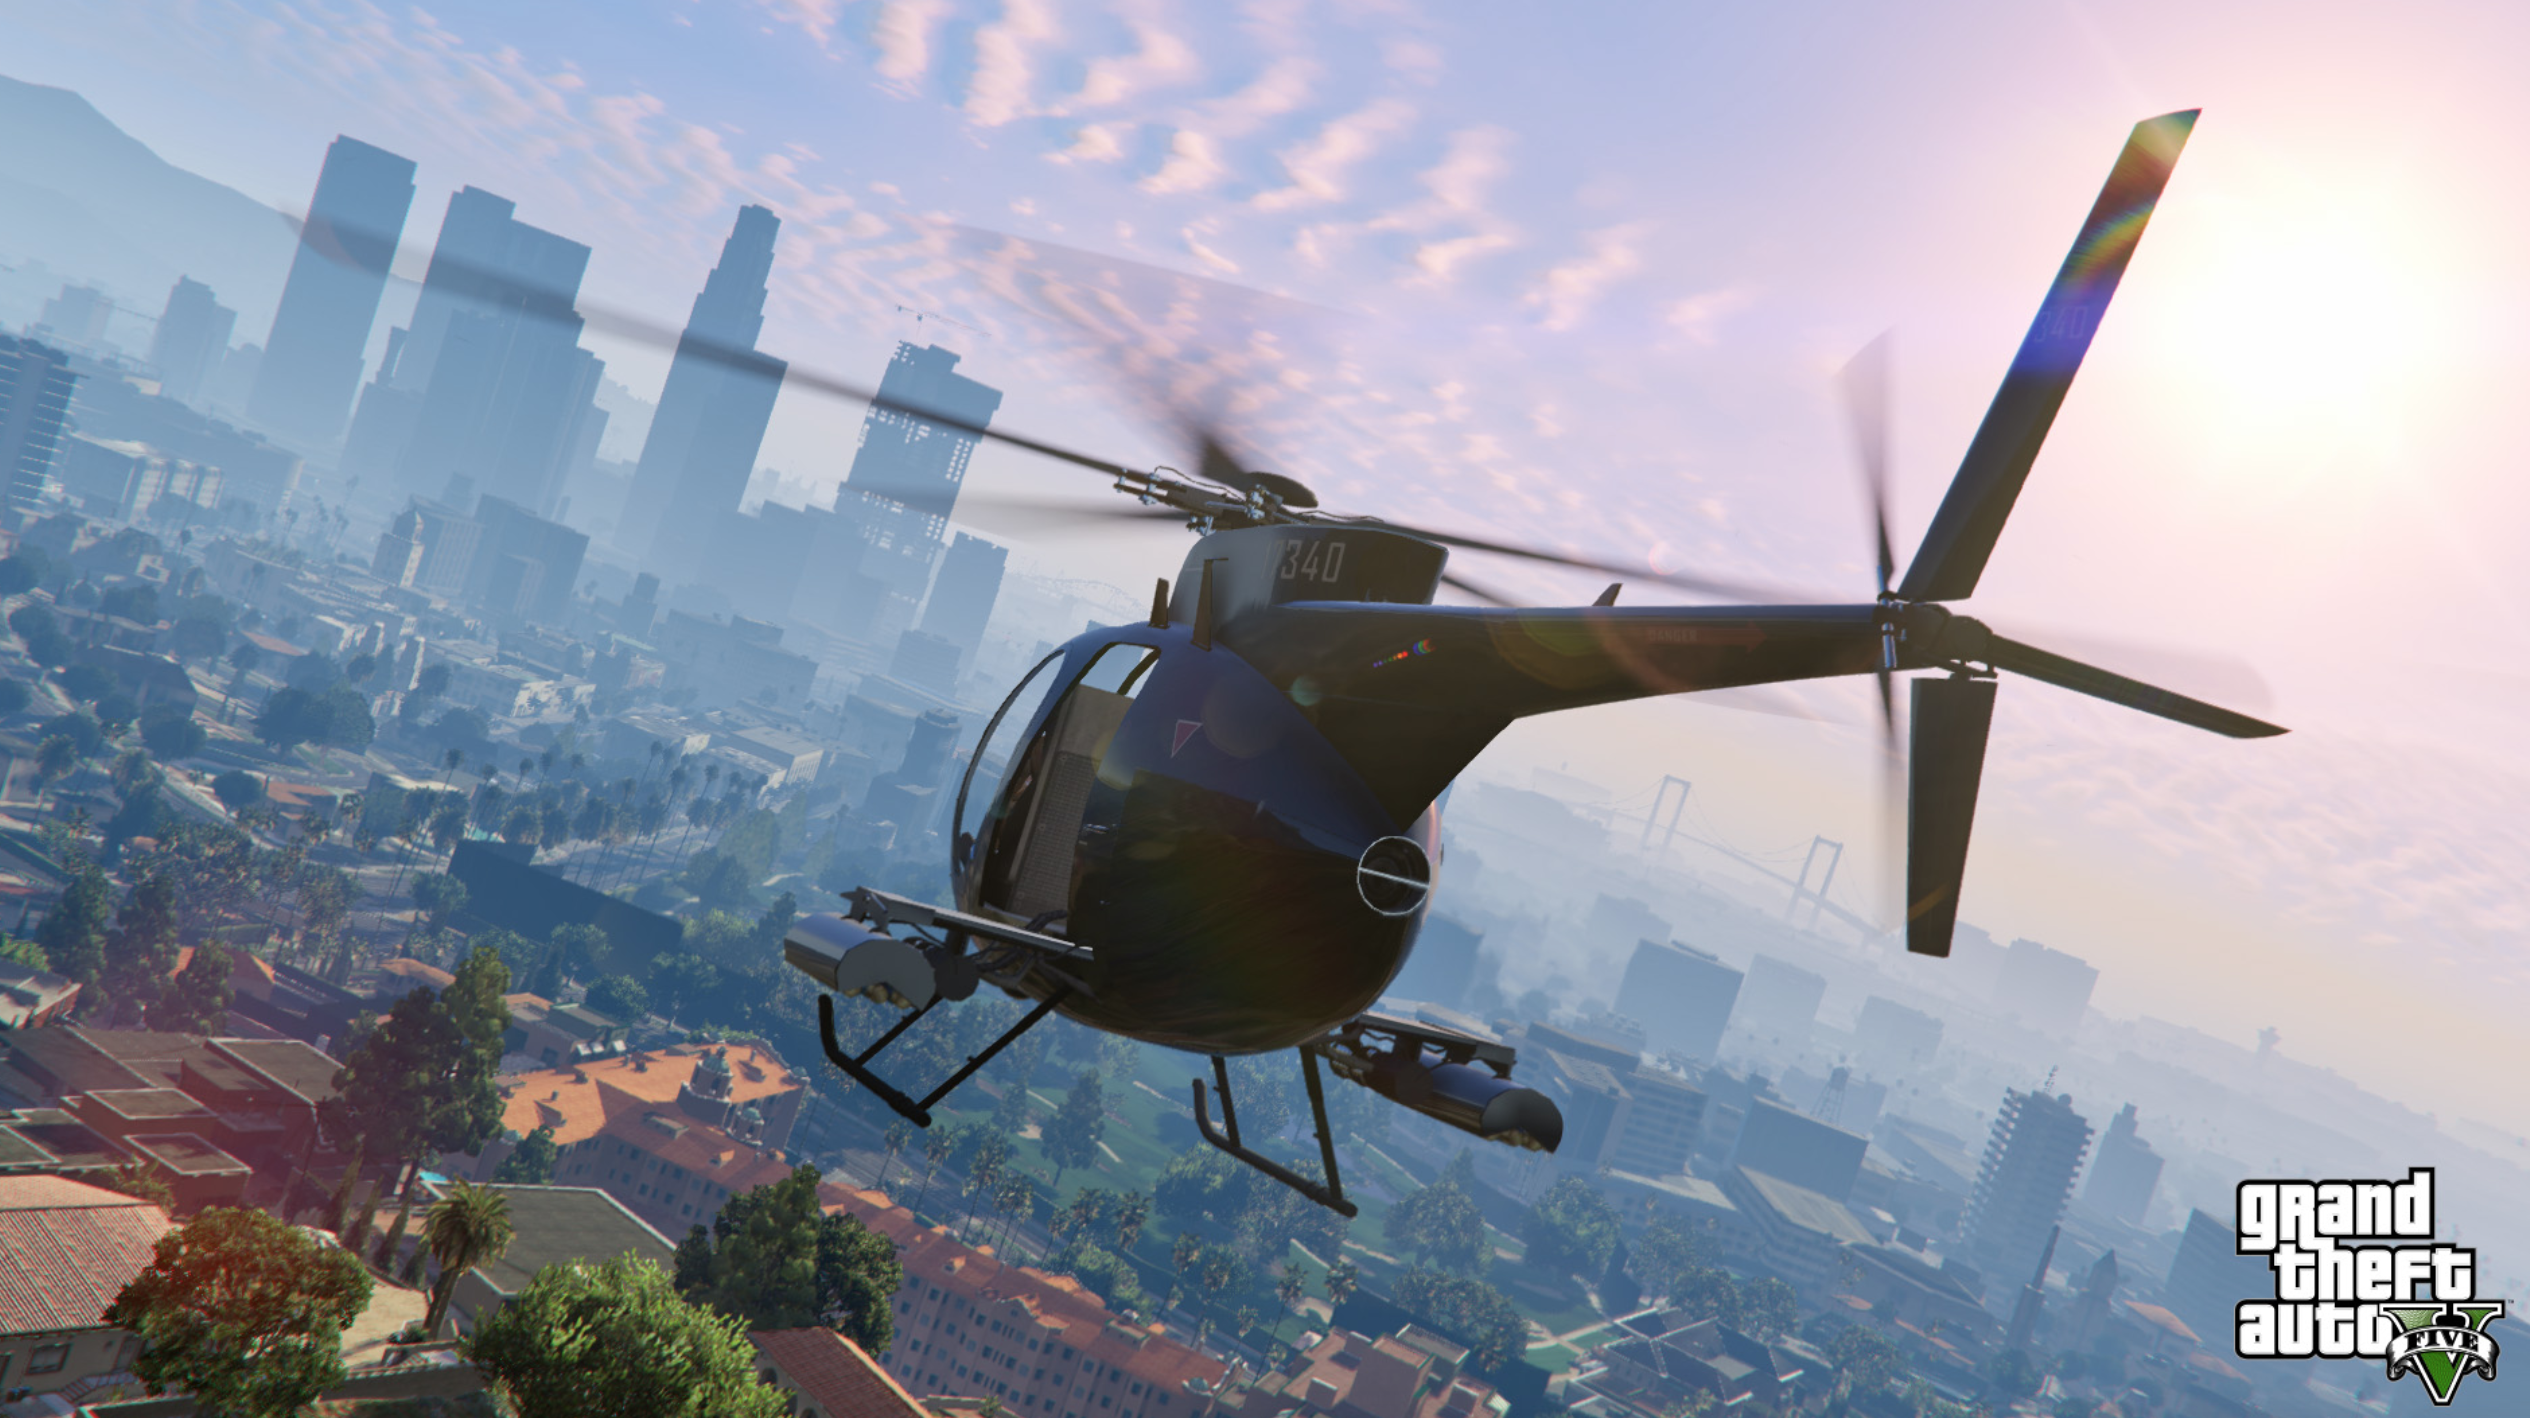 Grand Theft Auto Helicopter Stealing